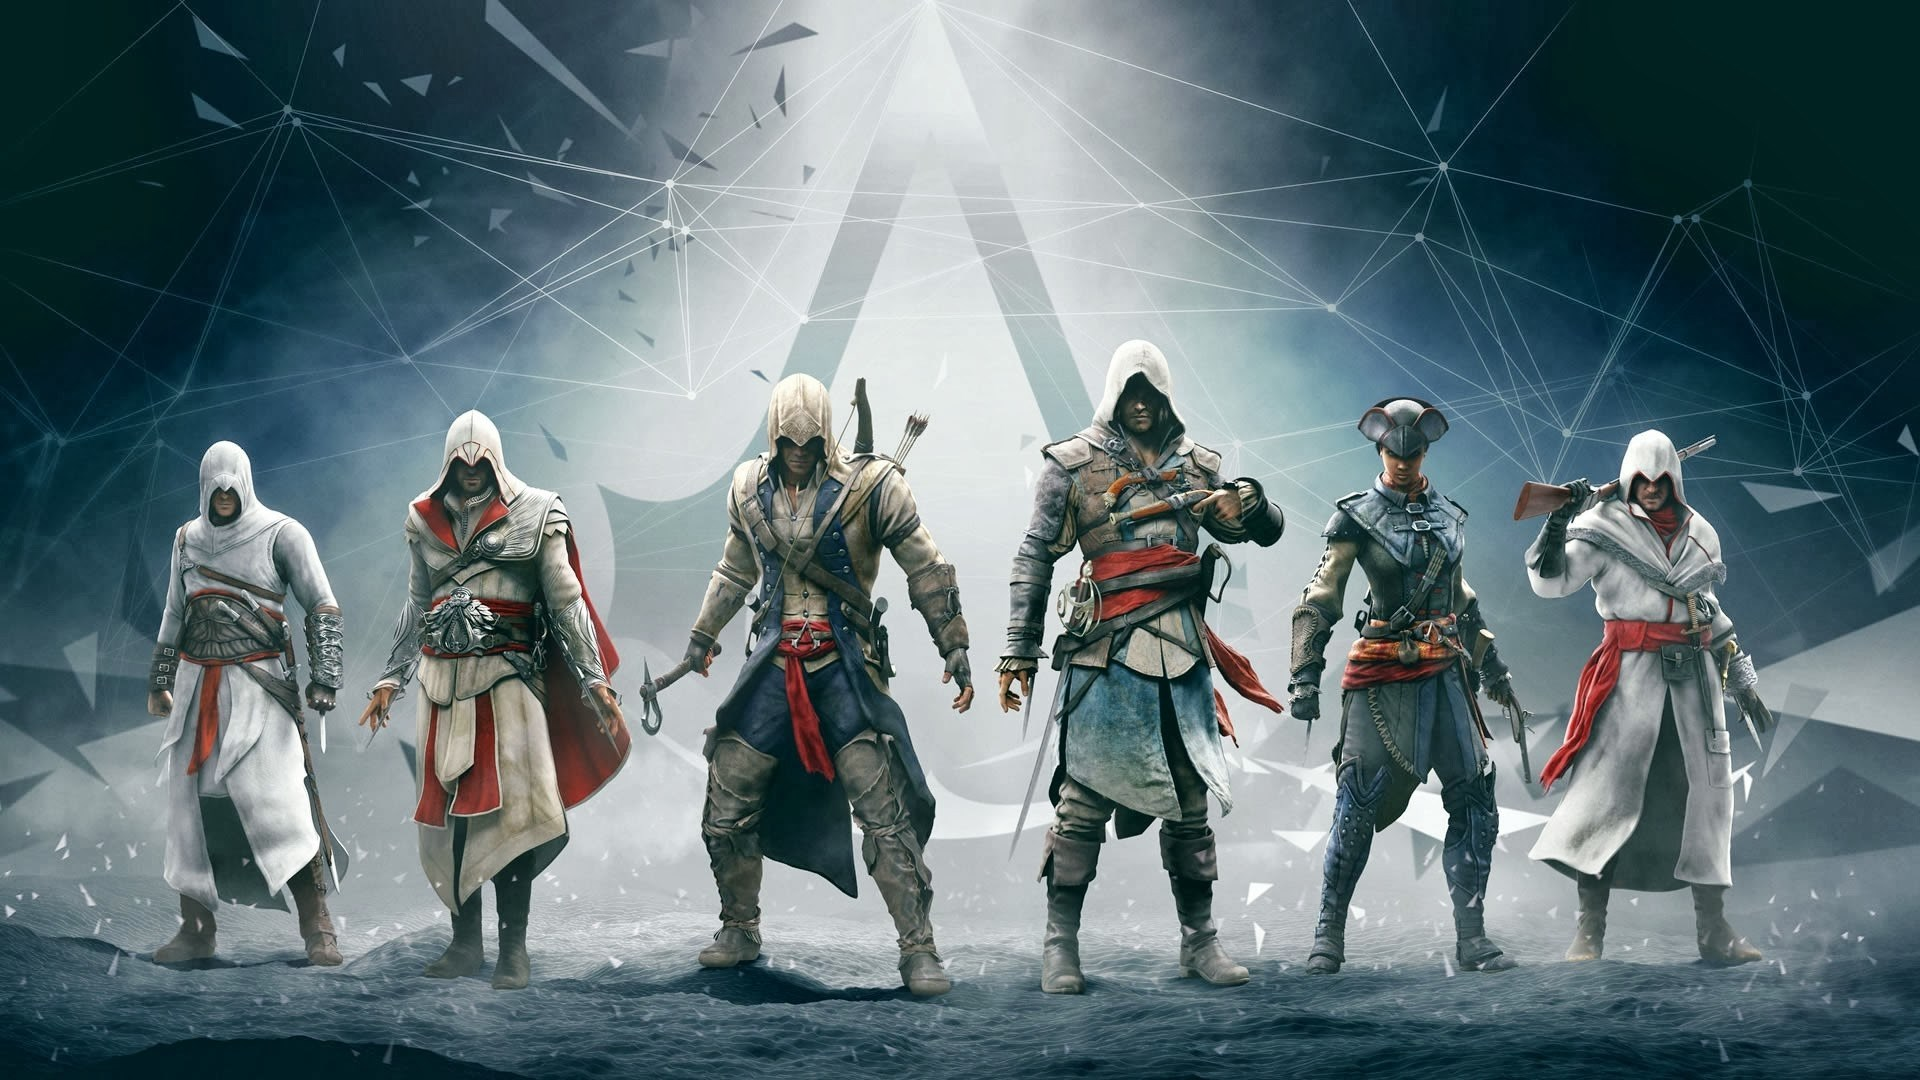 assassins-creed-picture-desktop-1920-x-1080-kB-wallpaper-wp3802581